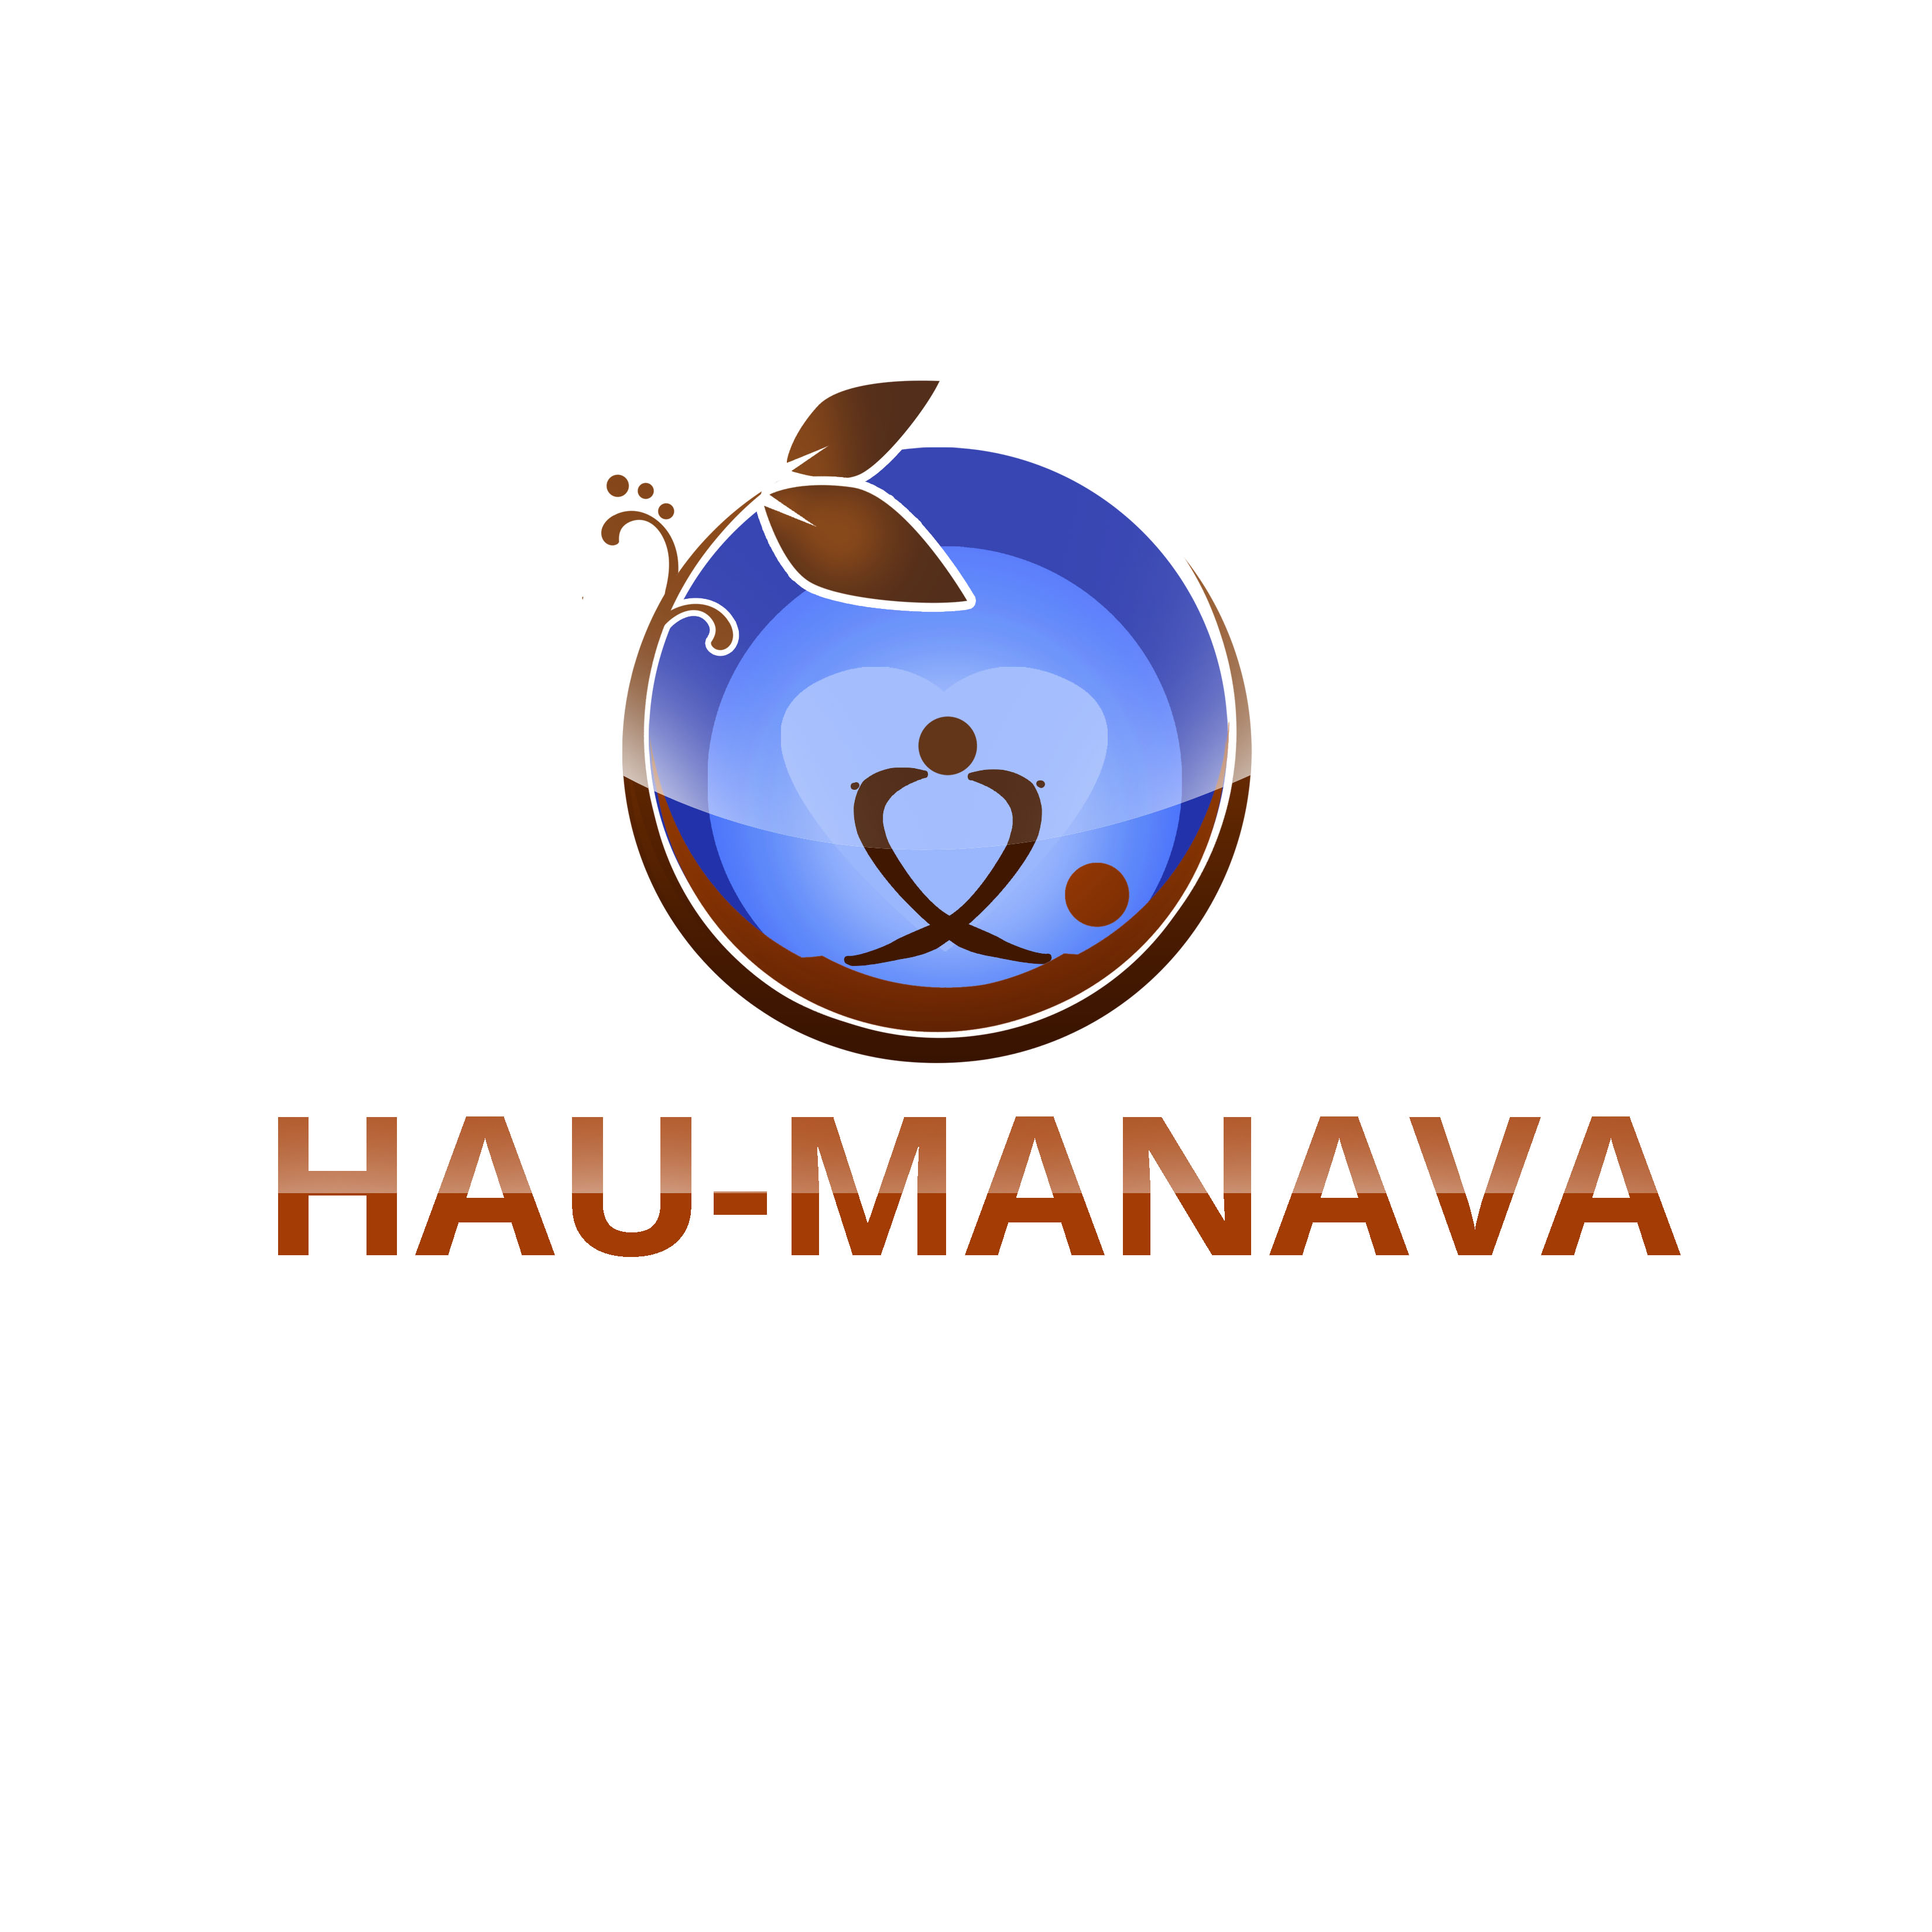 Logo Design by Allan Esclamado - Entry No. 1 in the Logo Design Contest Hau-Manava Logo Design.